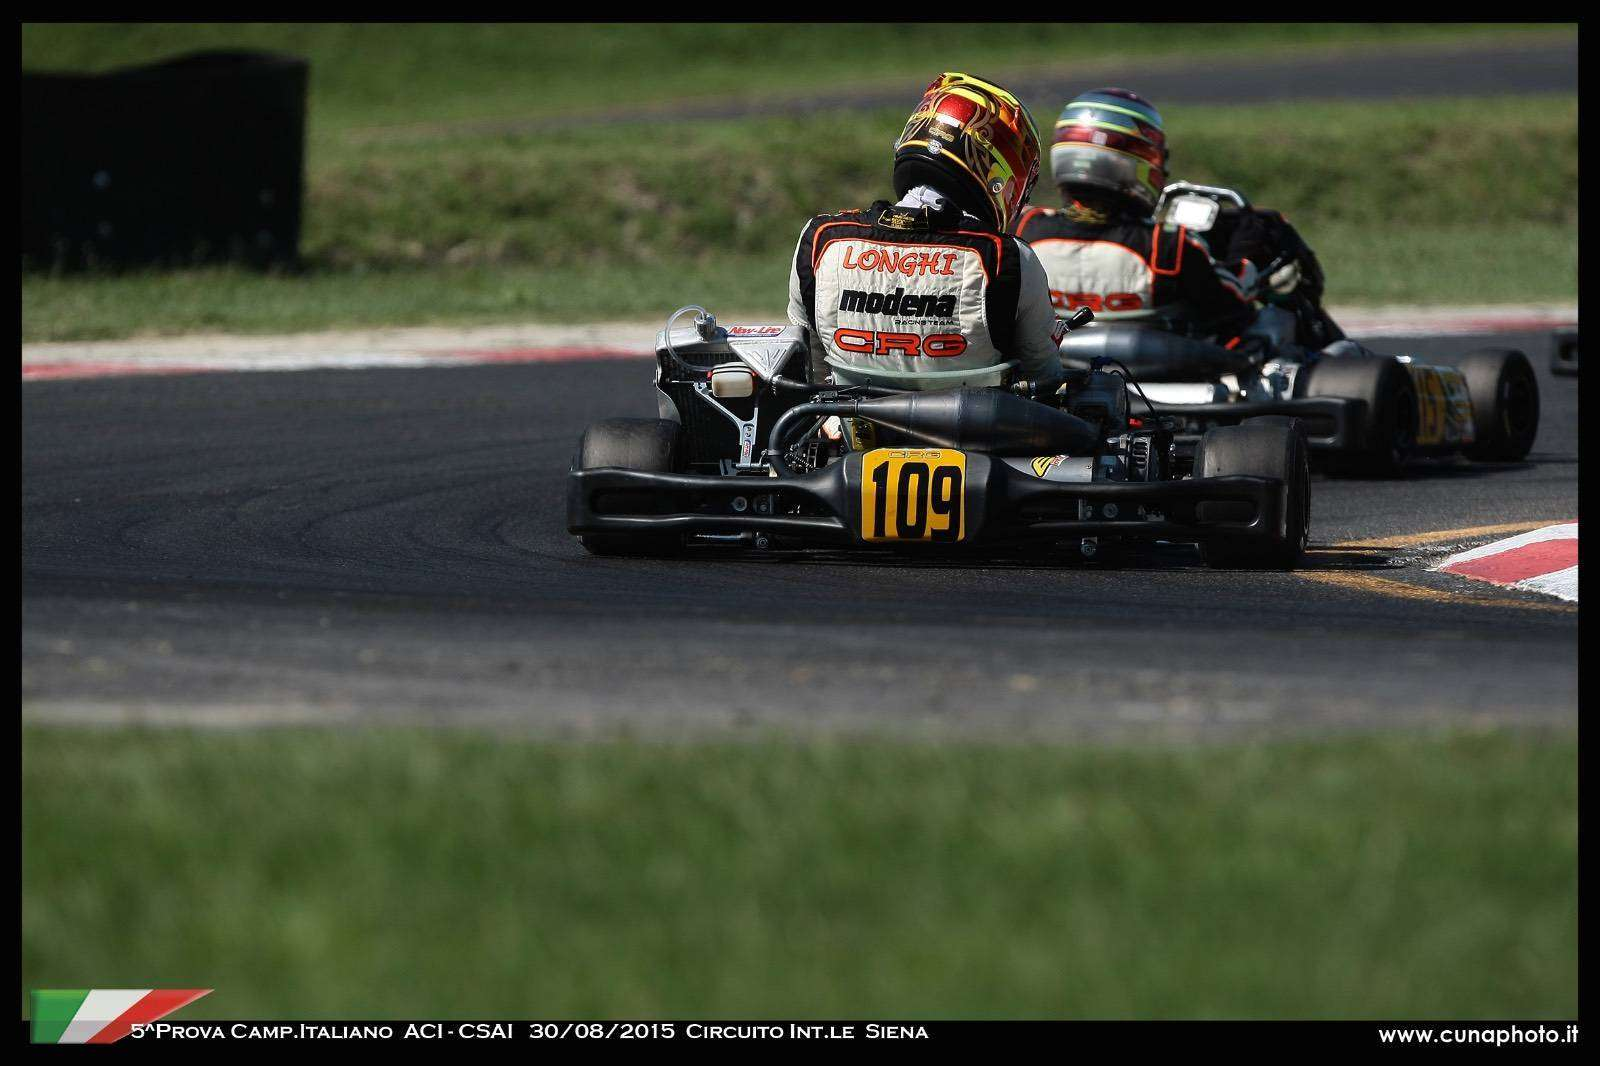 imaf-reasing-seats-karting-23